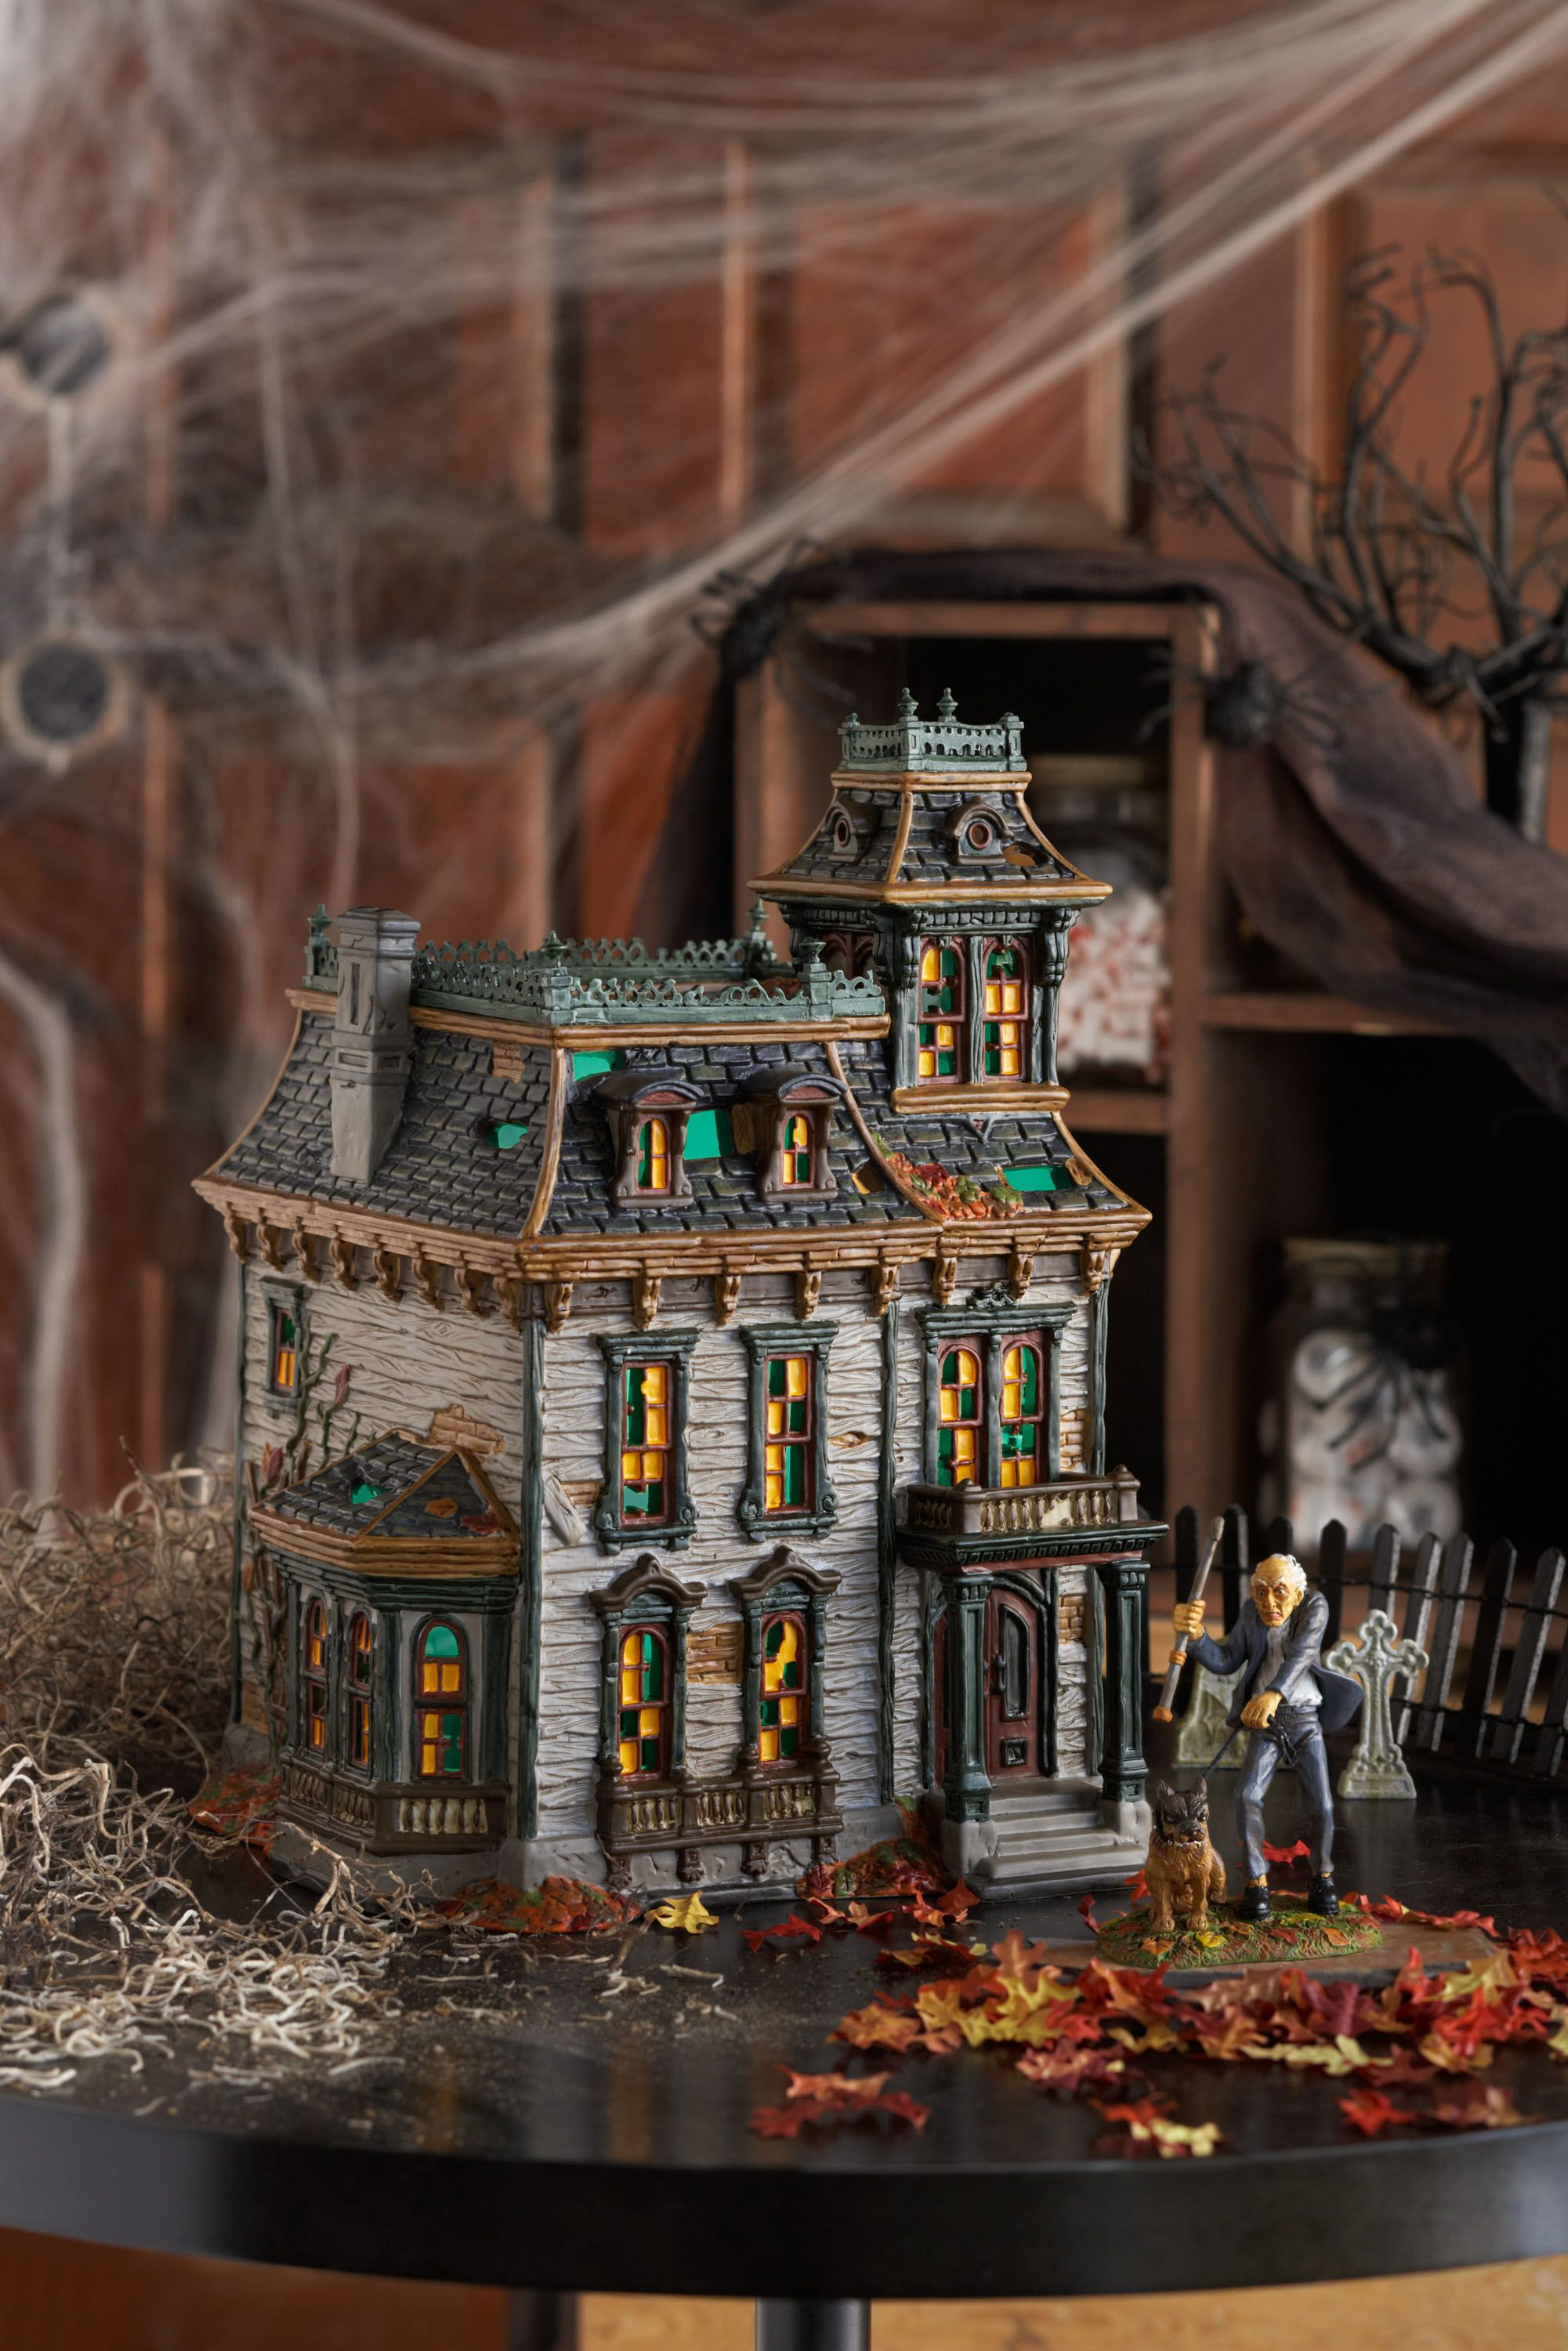 department 56 snow village halloween series 4025337 mordecai mansion www department56com shopdepartment56com